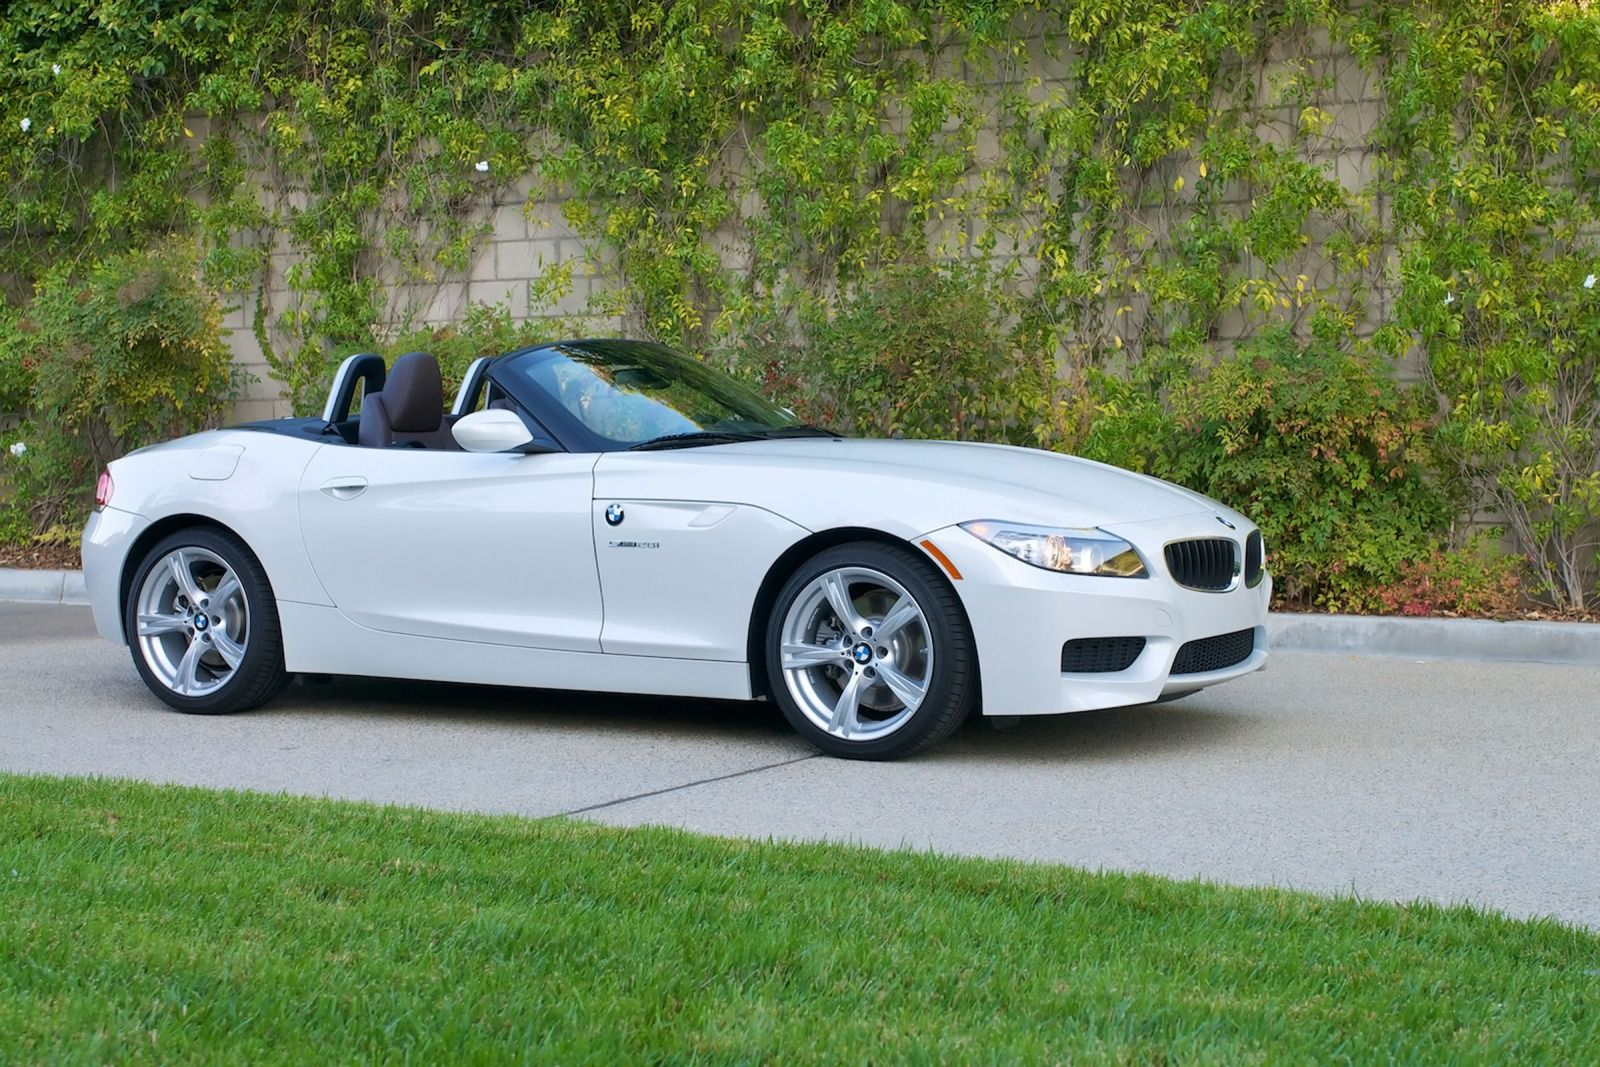 BMW Z4 sDrive28i 2010 Technical specifications | Interior ...